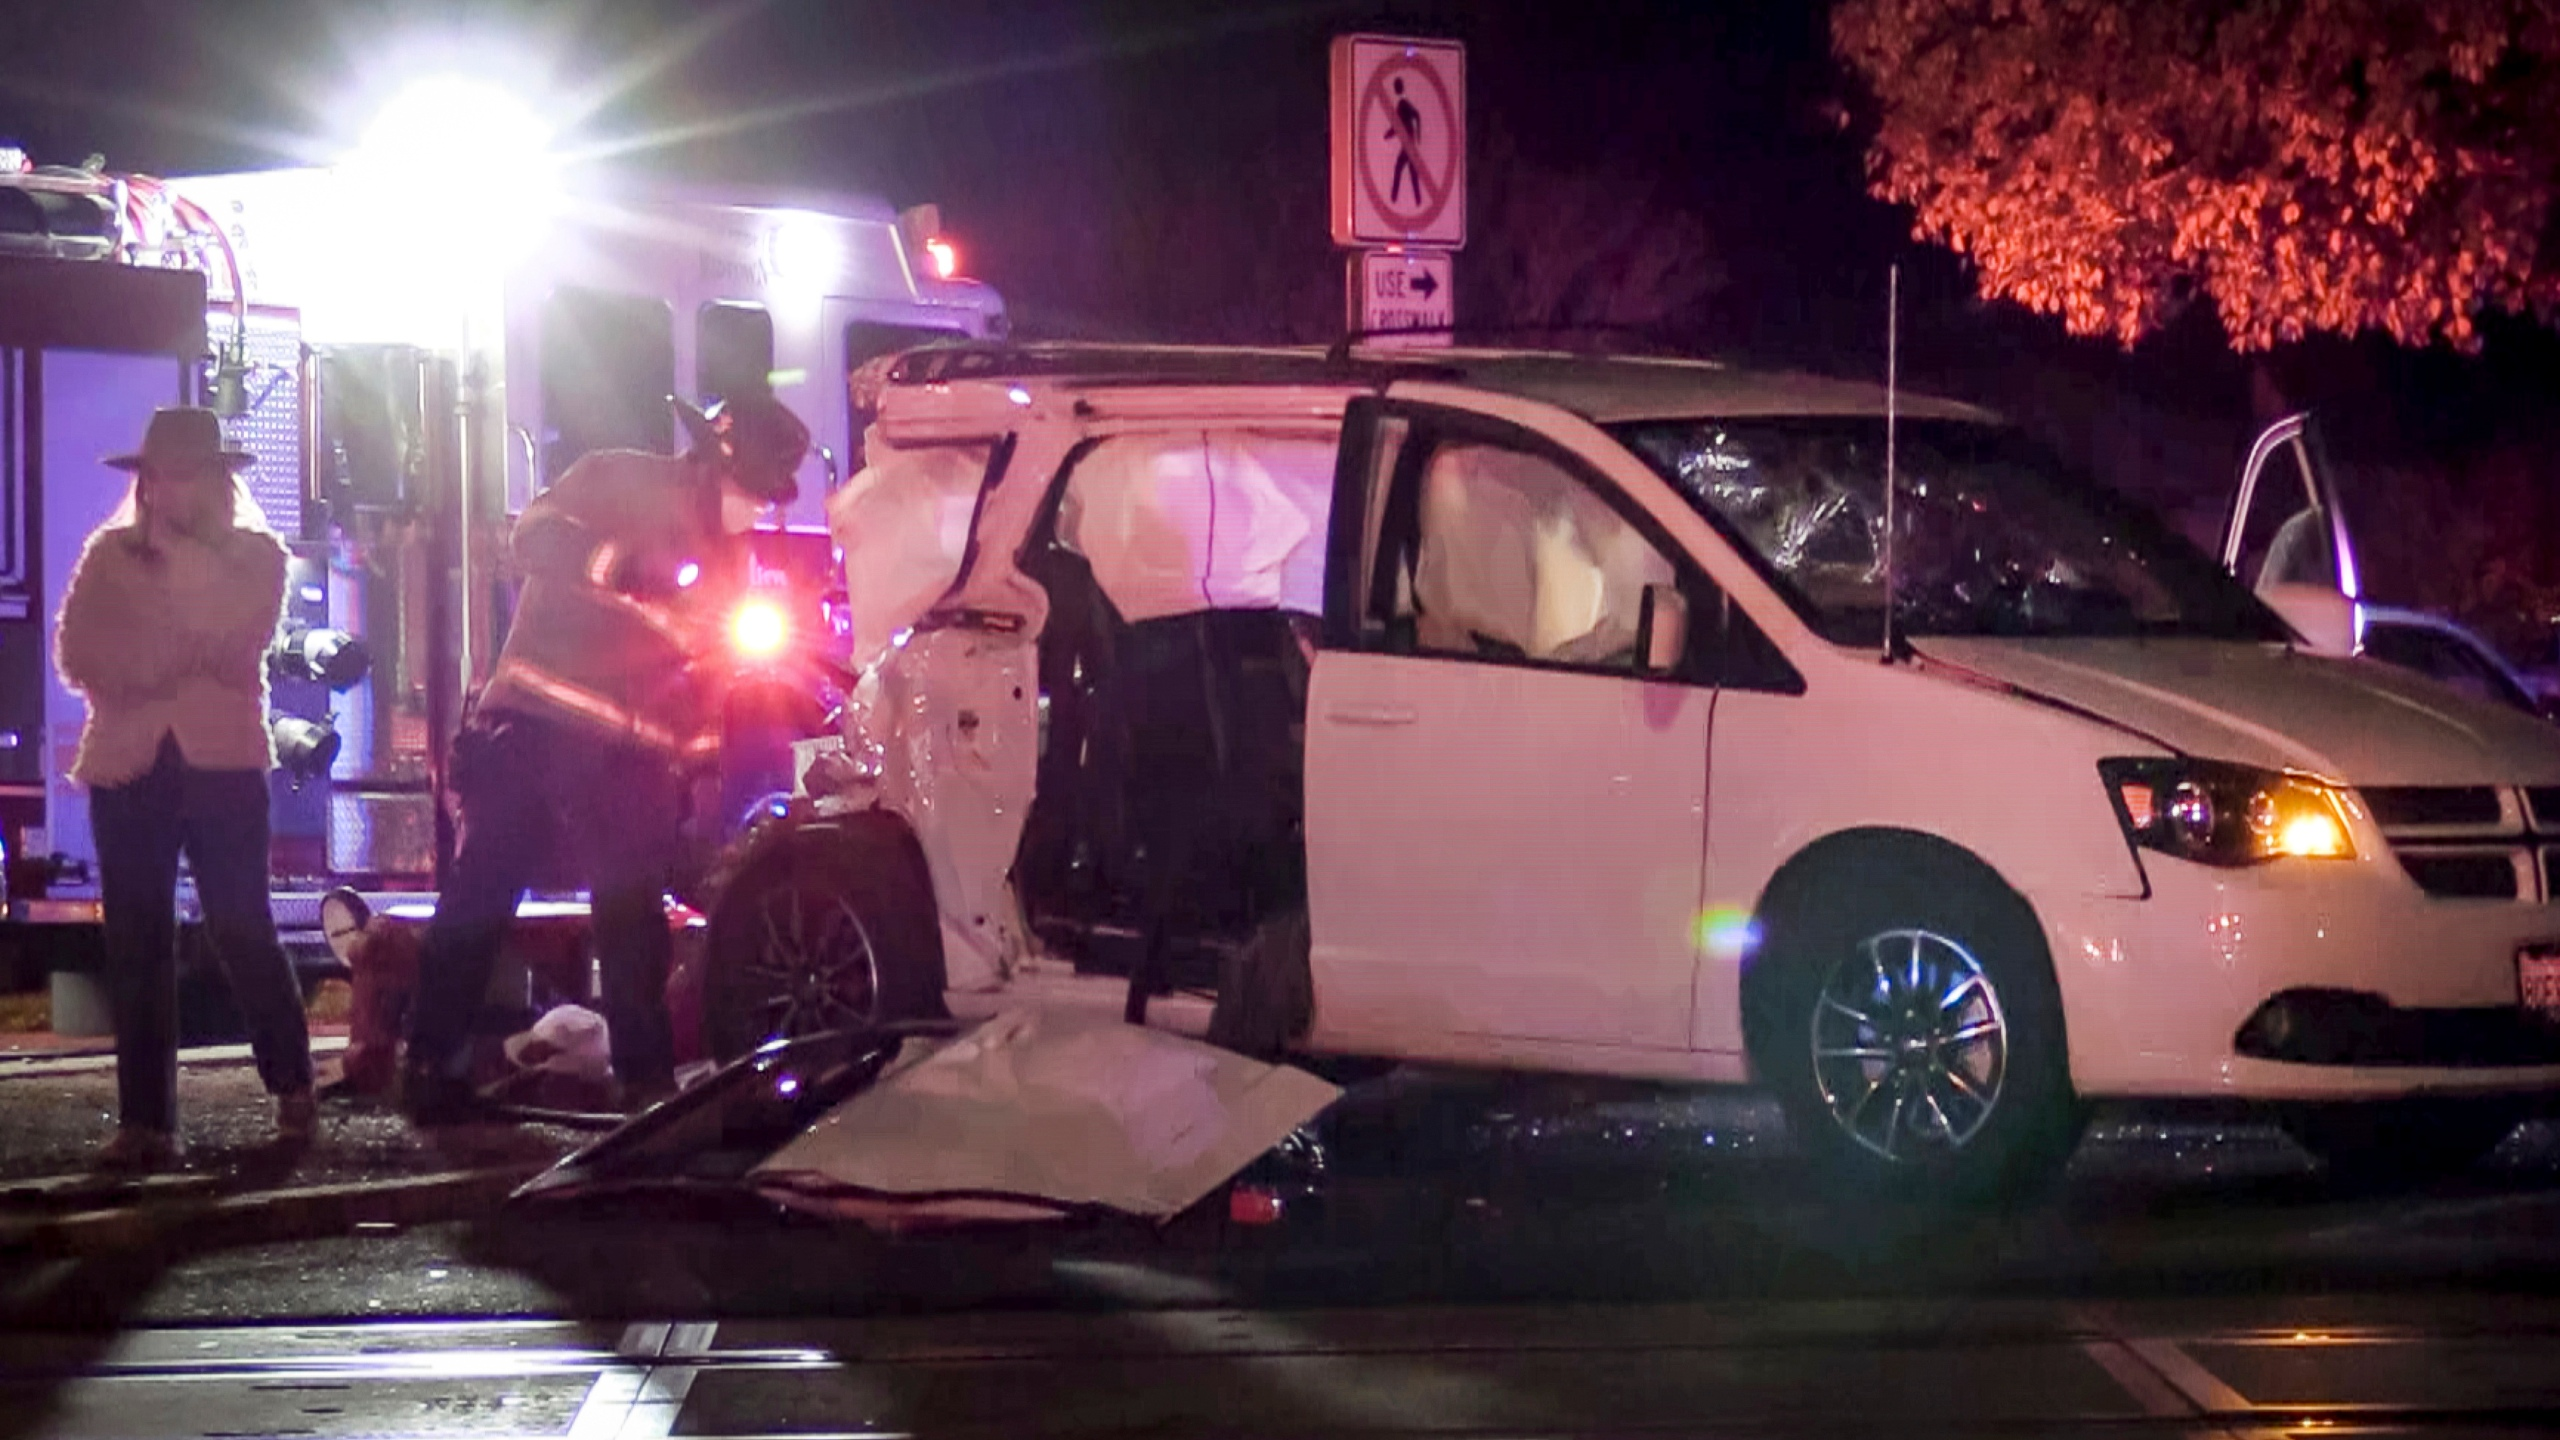 In this image from video, a firefighter inspects the scene where a small child was killed when a minivan was struck by a train while a family was waiting to enter a drive-thru Christmas lights display in Fresno, Calif., on Tuesday, Dec. 1, 2020. Police say the van with four people inside was stopped at an intersection when it was hit by an Amtrak train. (Craig Kohlruss/The Fresno Bee via AP)